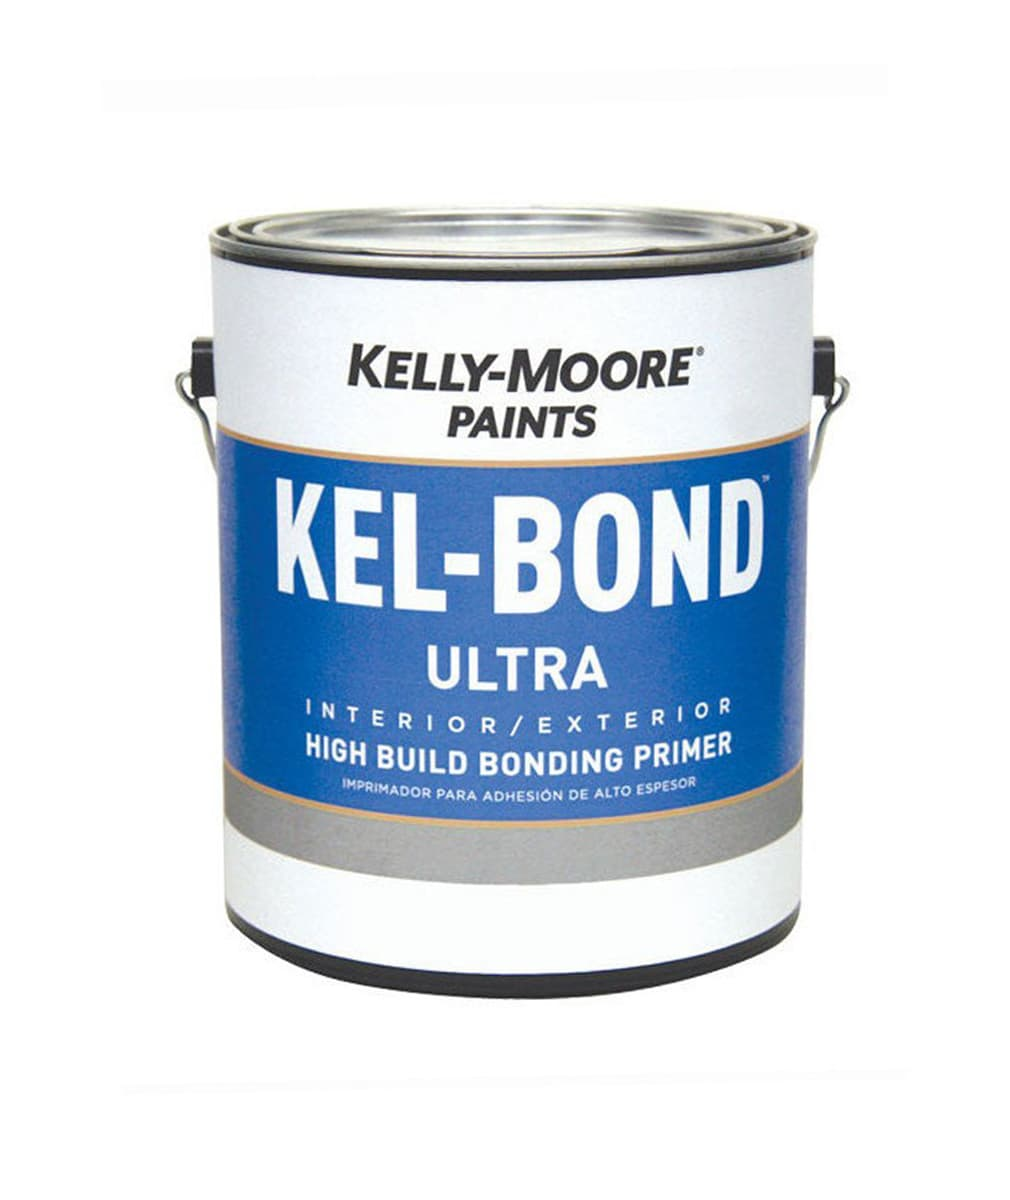 Kel-Bond Ultra Primer, available at Kelly-Moore Paints for Contractors.